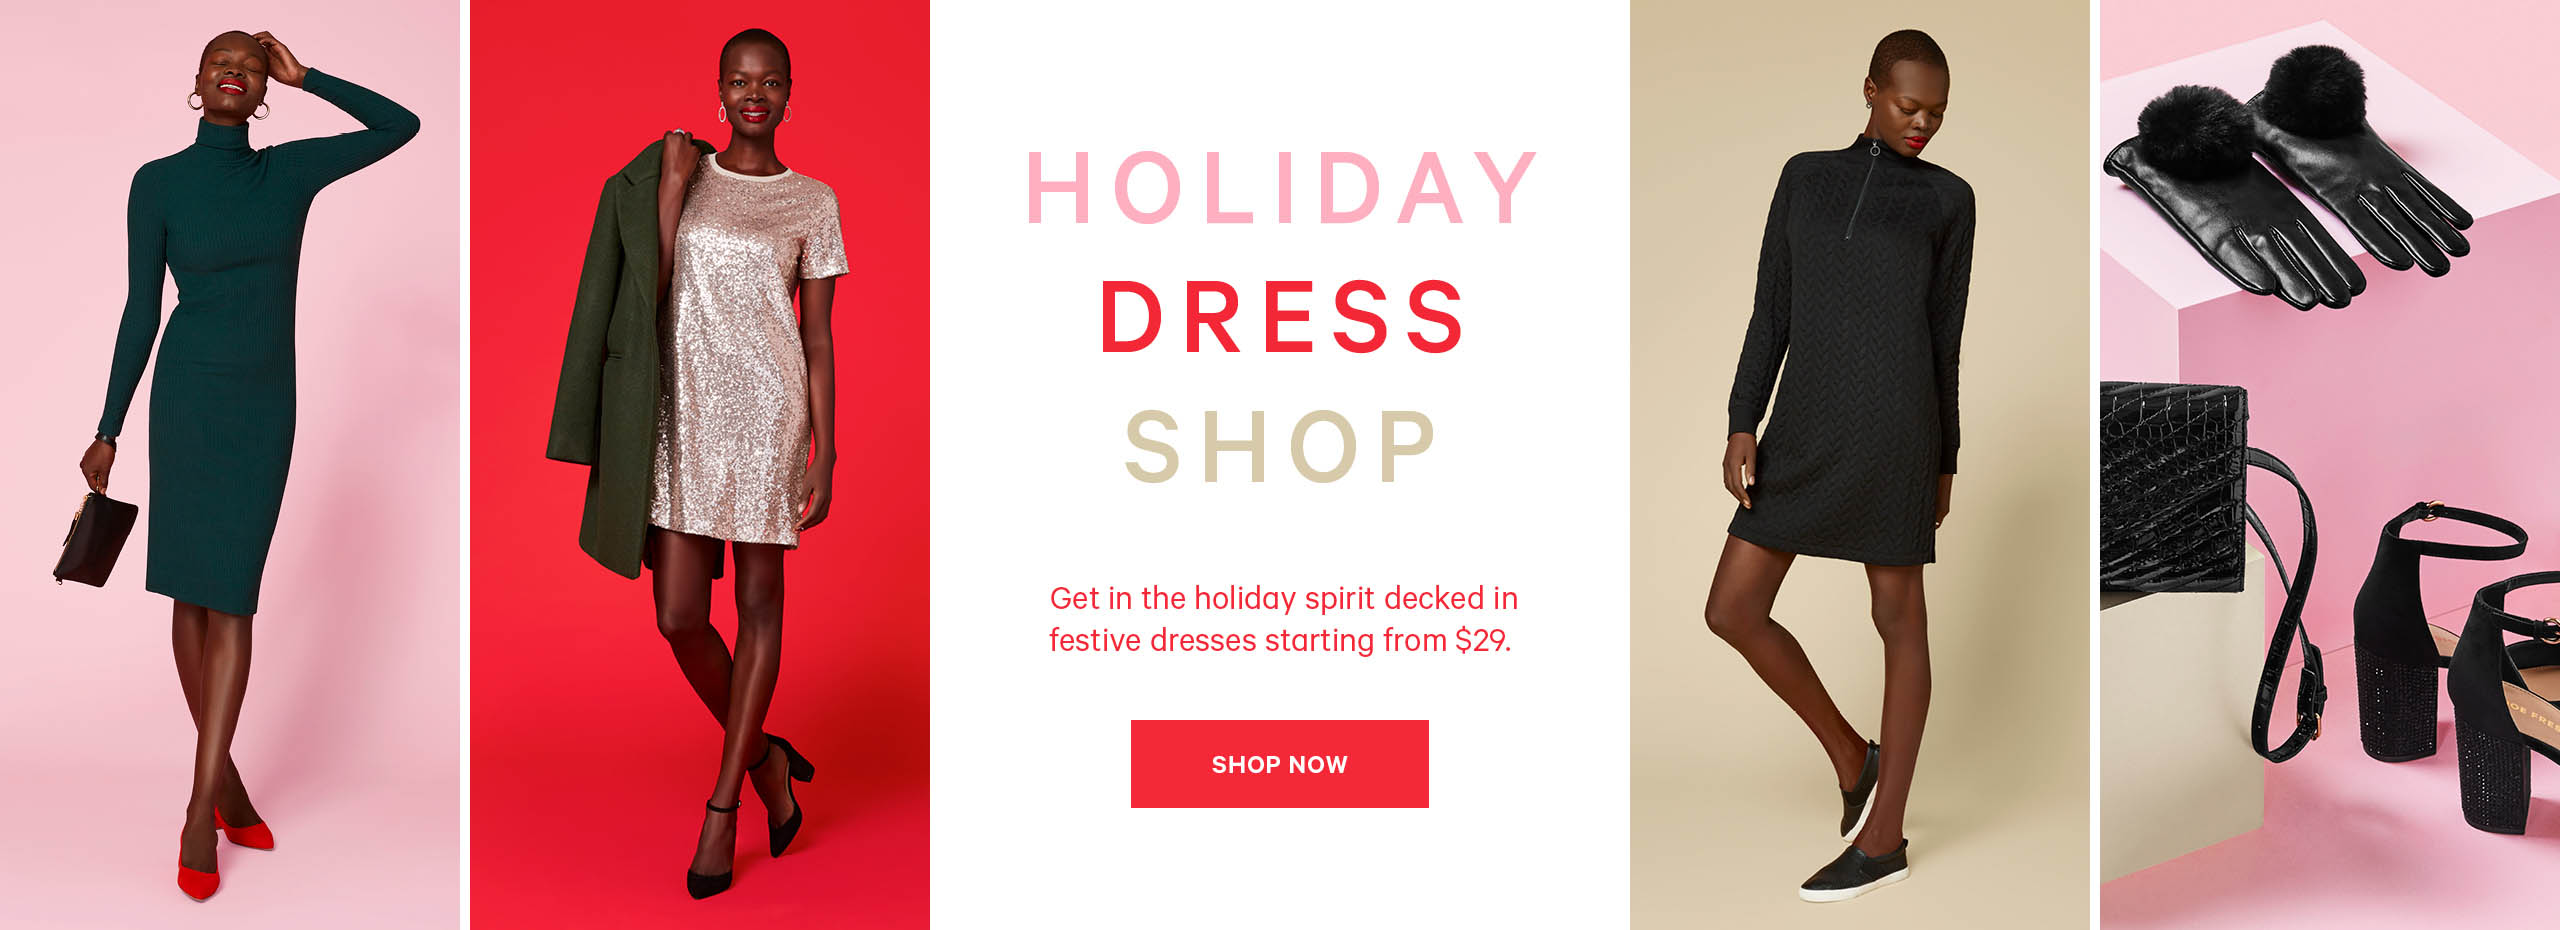 THE HOLIDAY DRESS SHOP